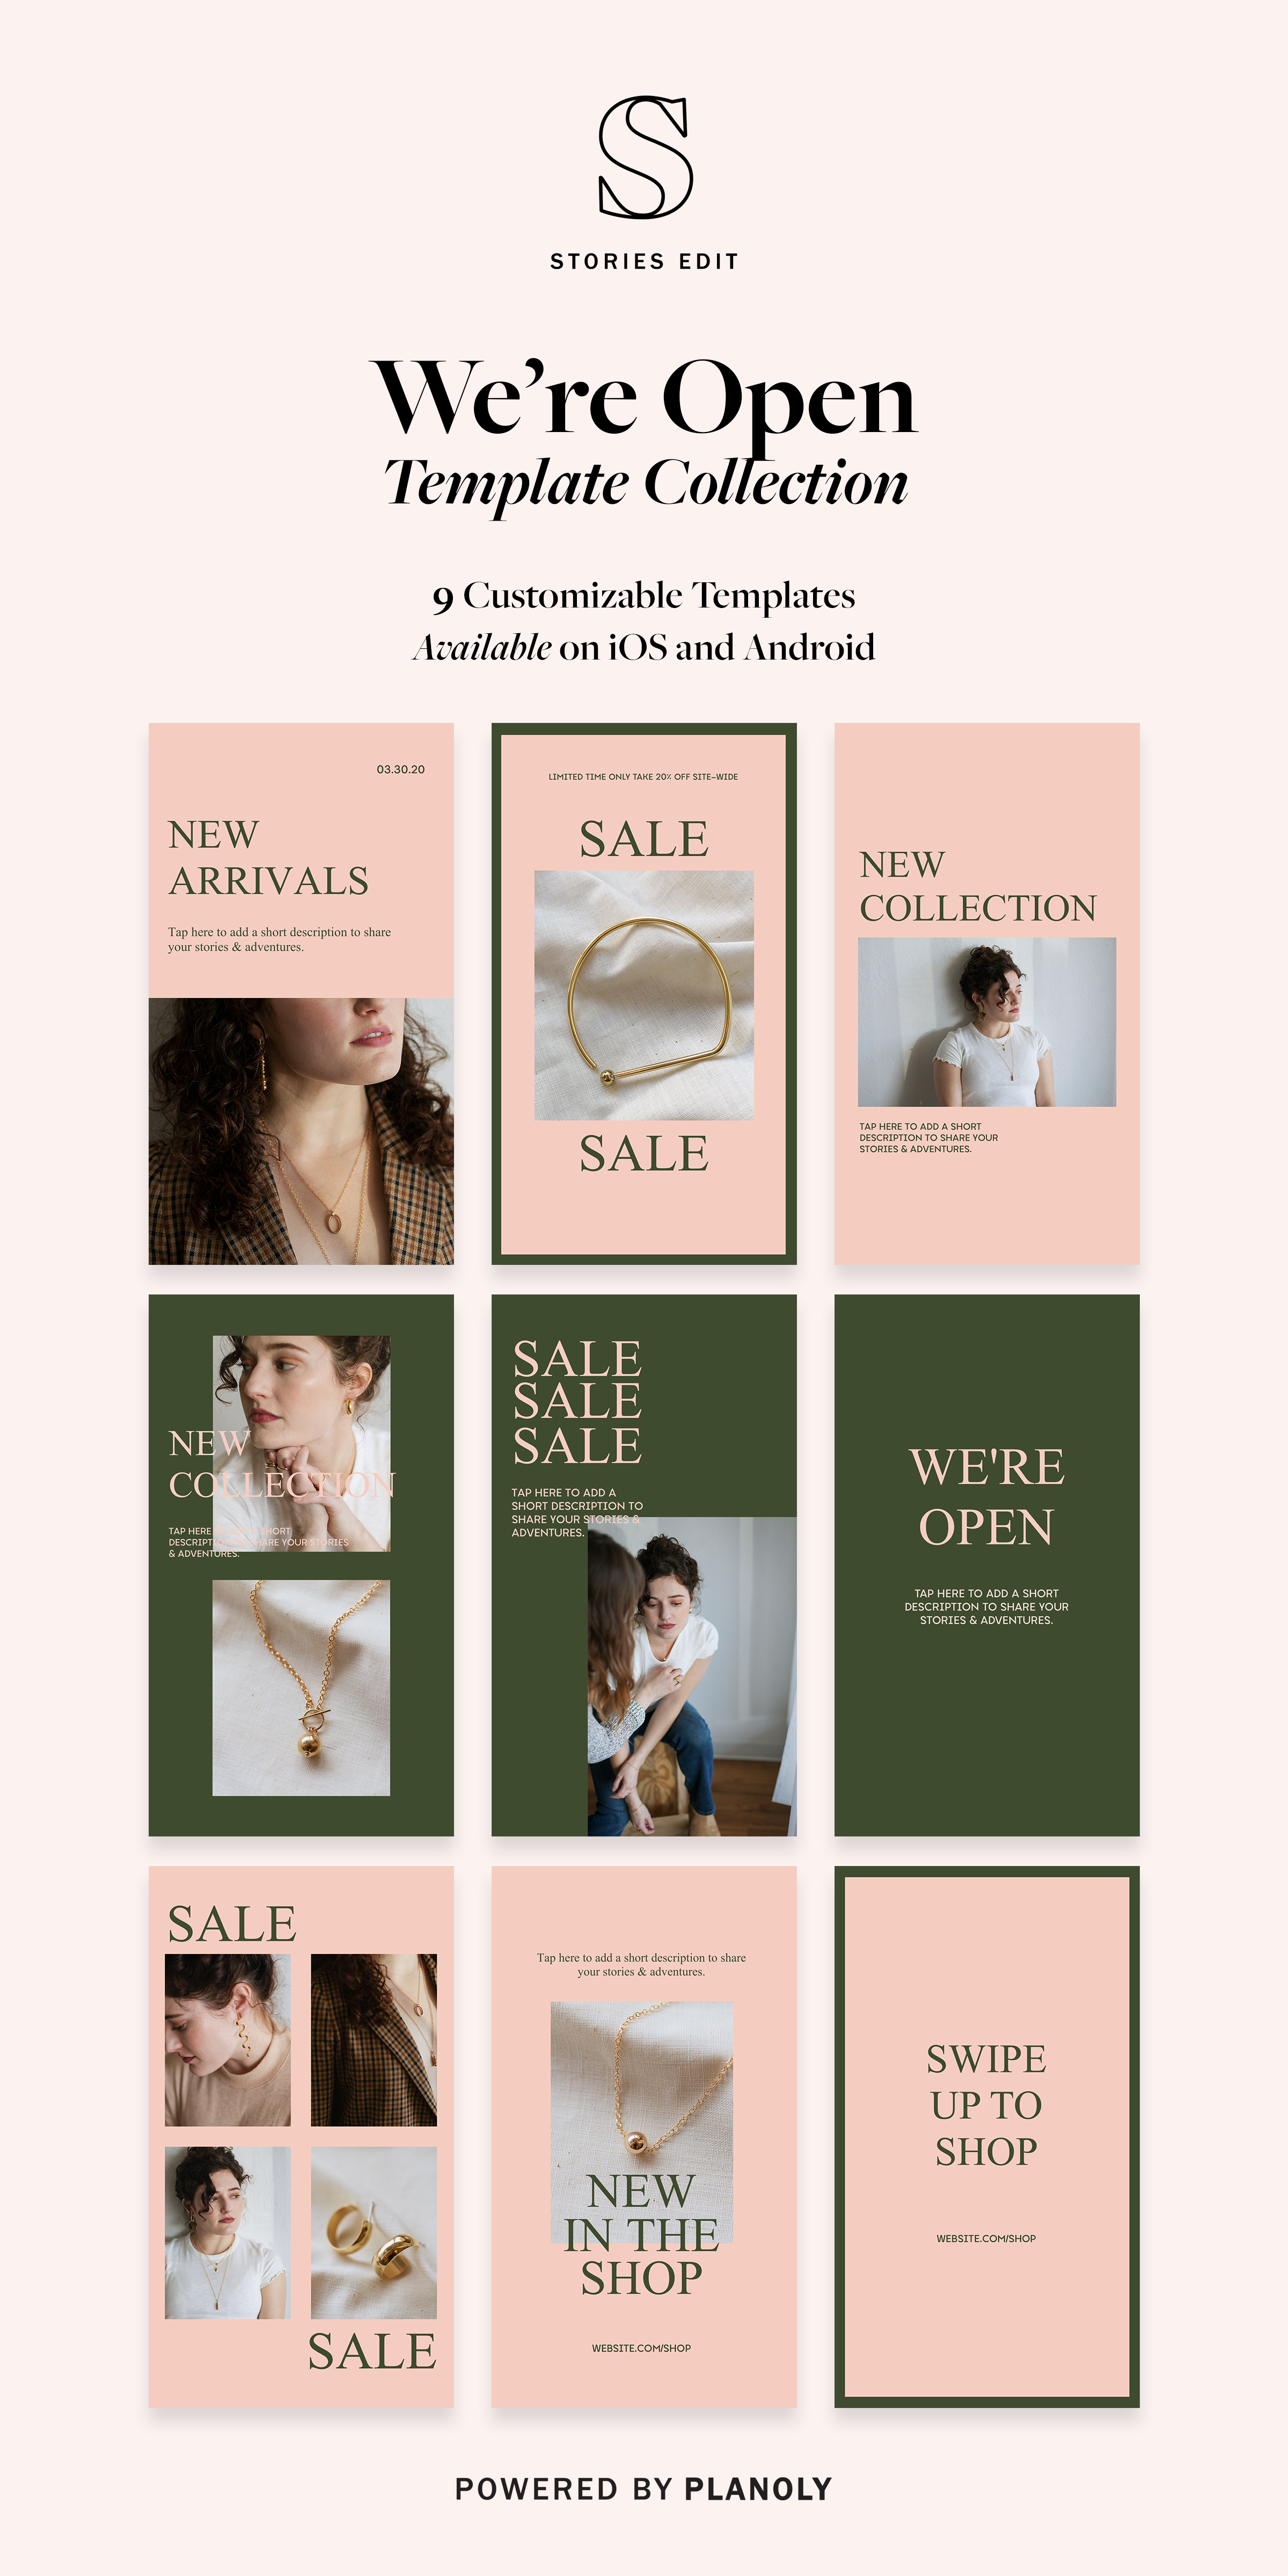 PLANOLY | We're Open Template Collection